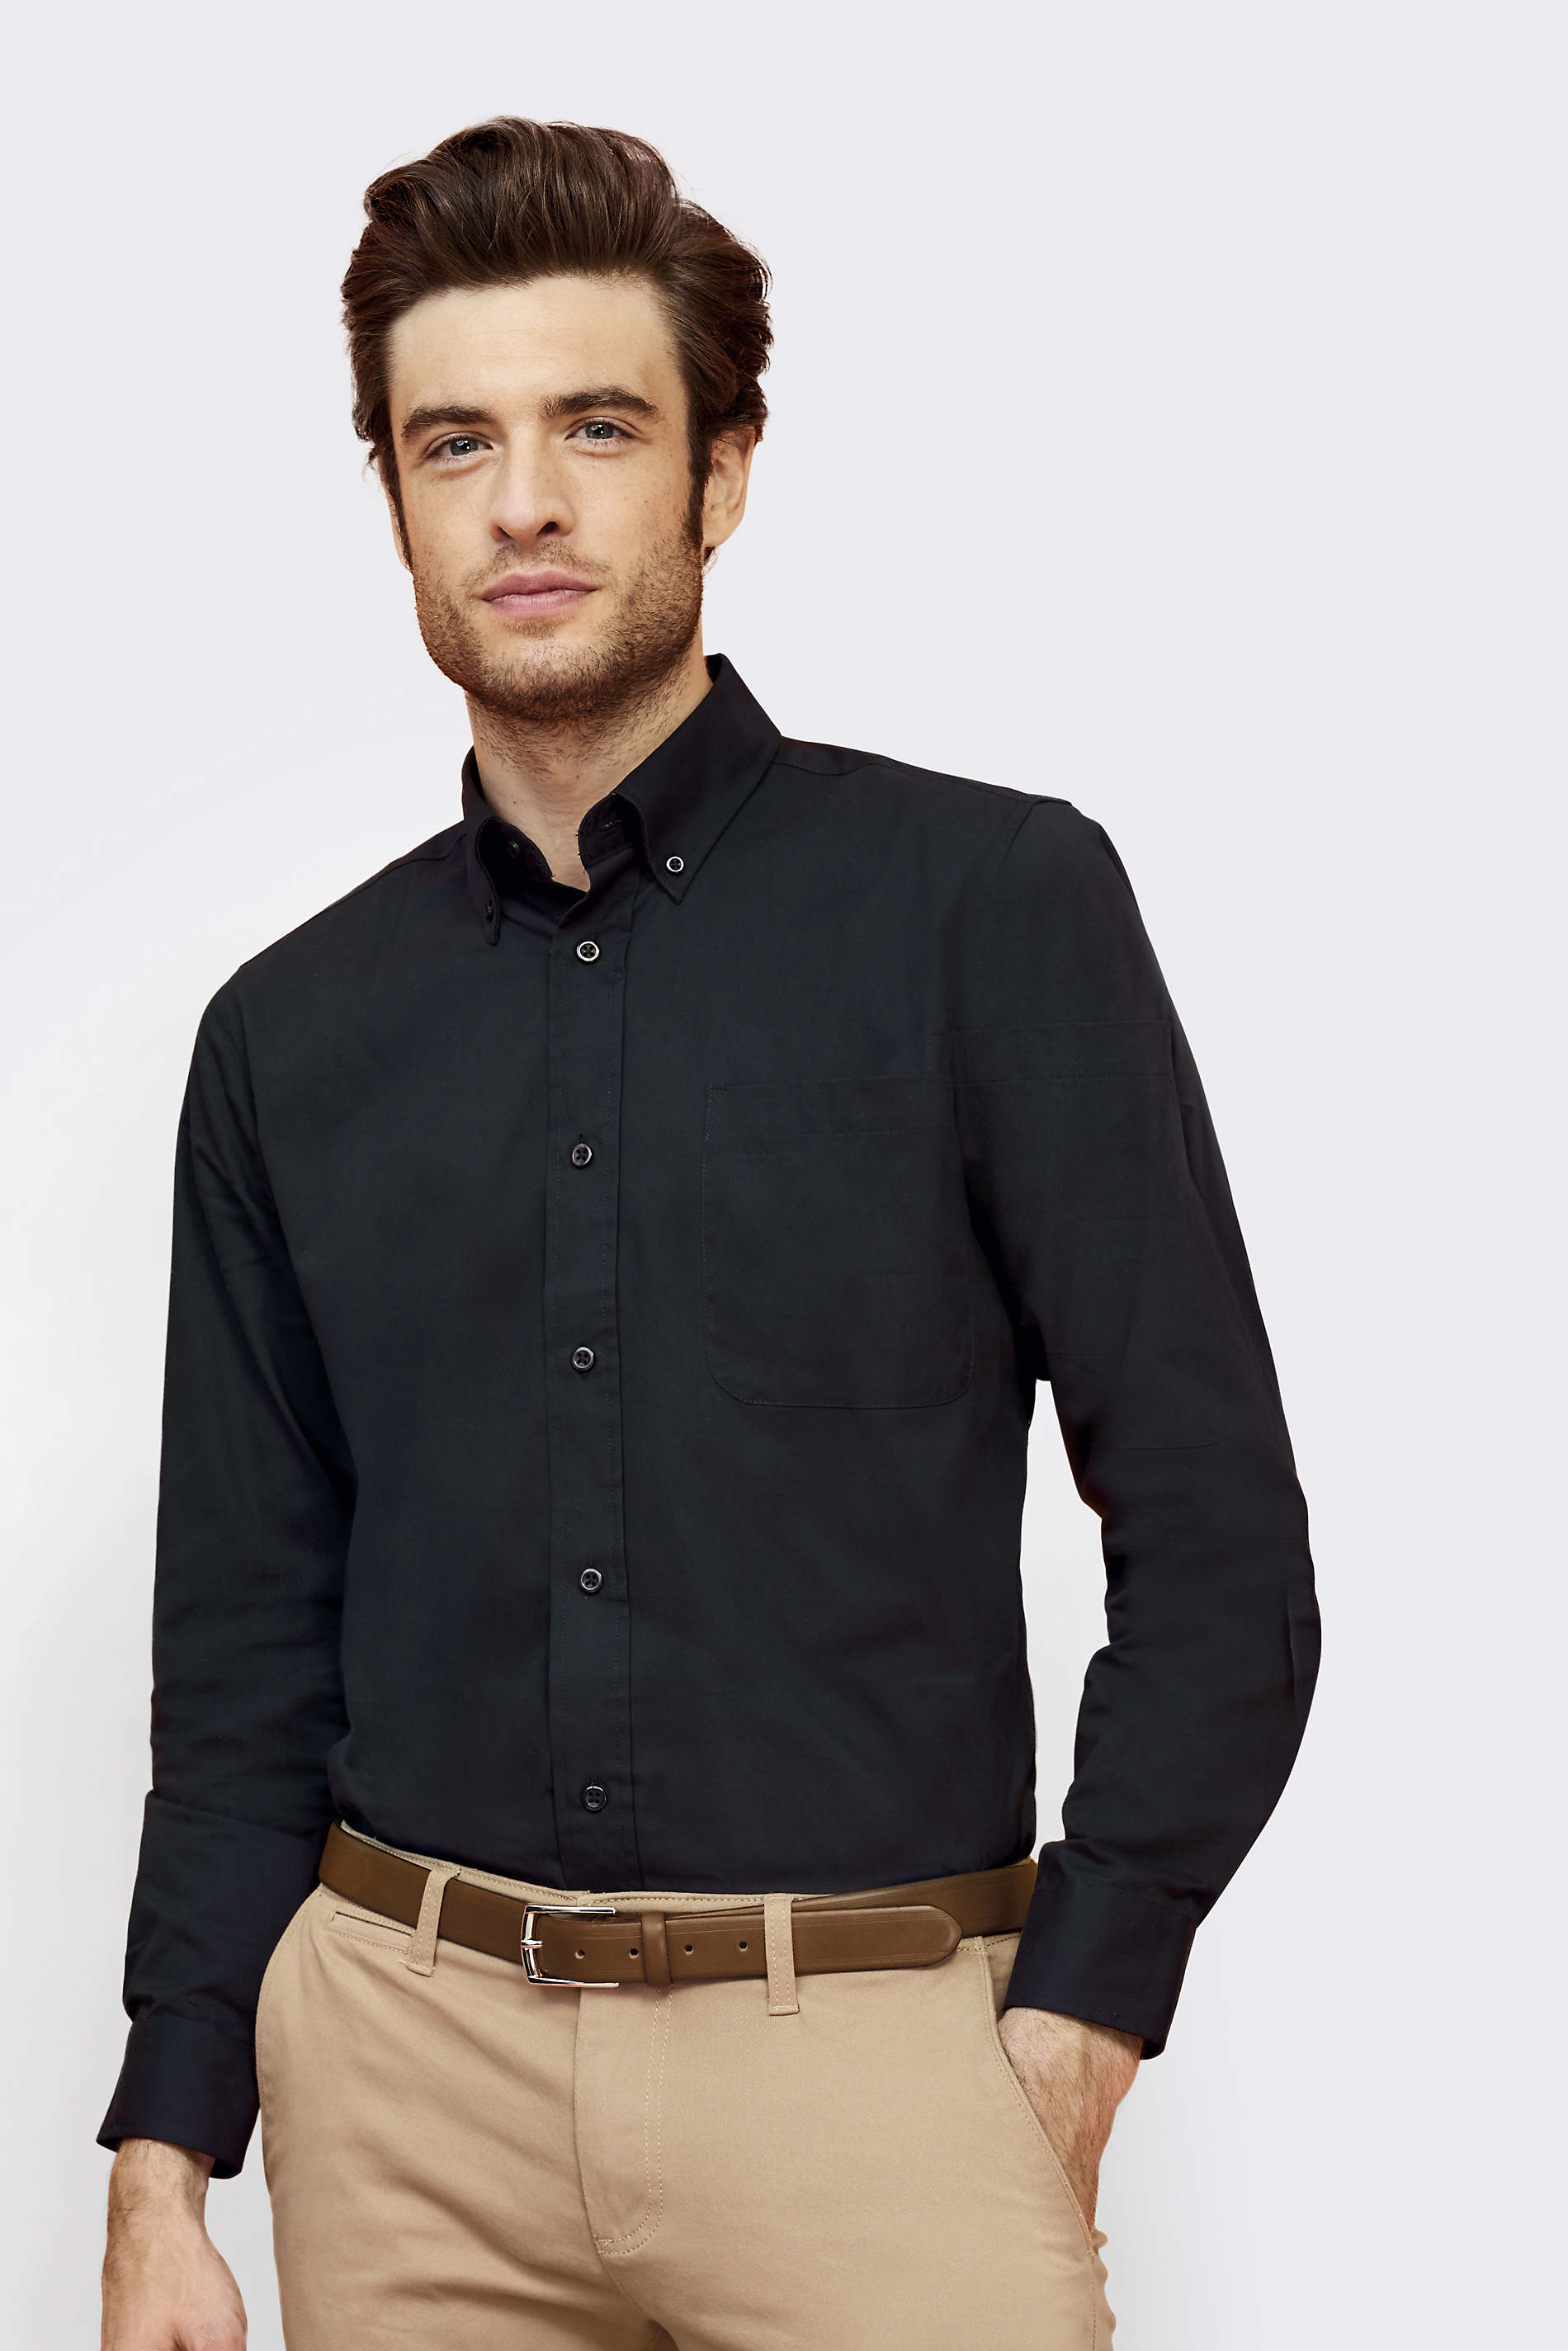 CHEMISE HOMME MANCHES LONGUES EN TWILL SOL'S BEL-AIR